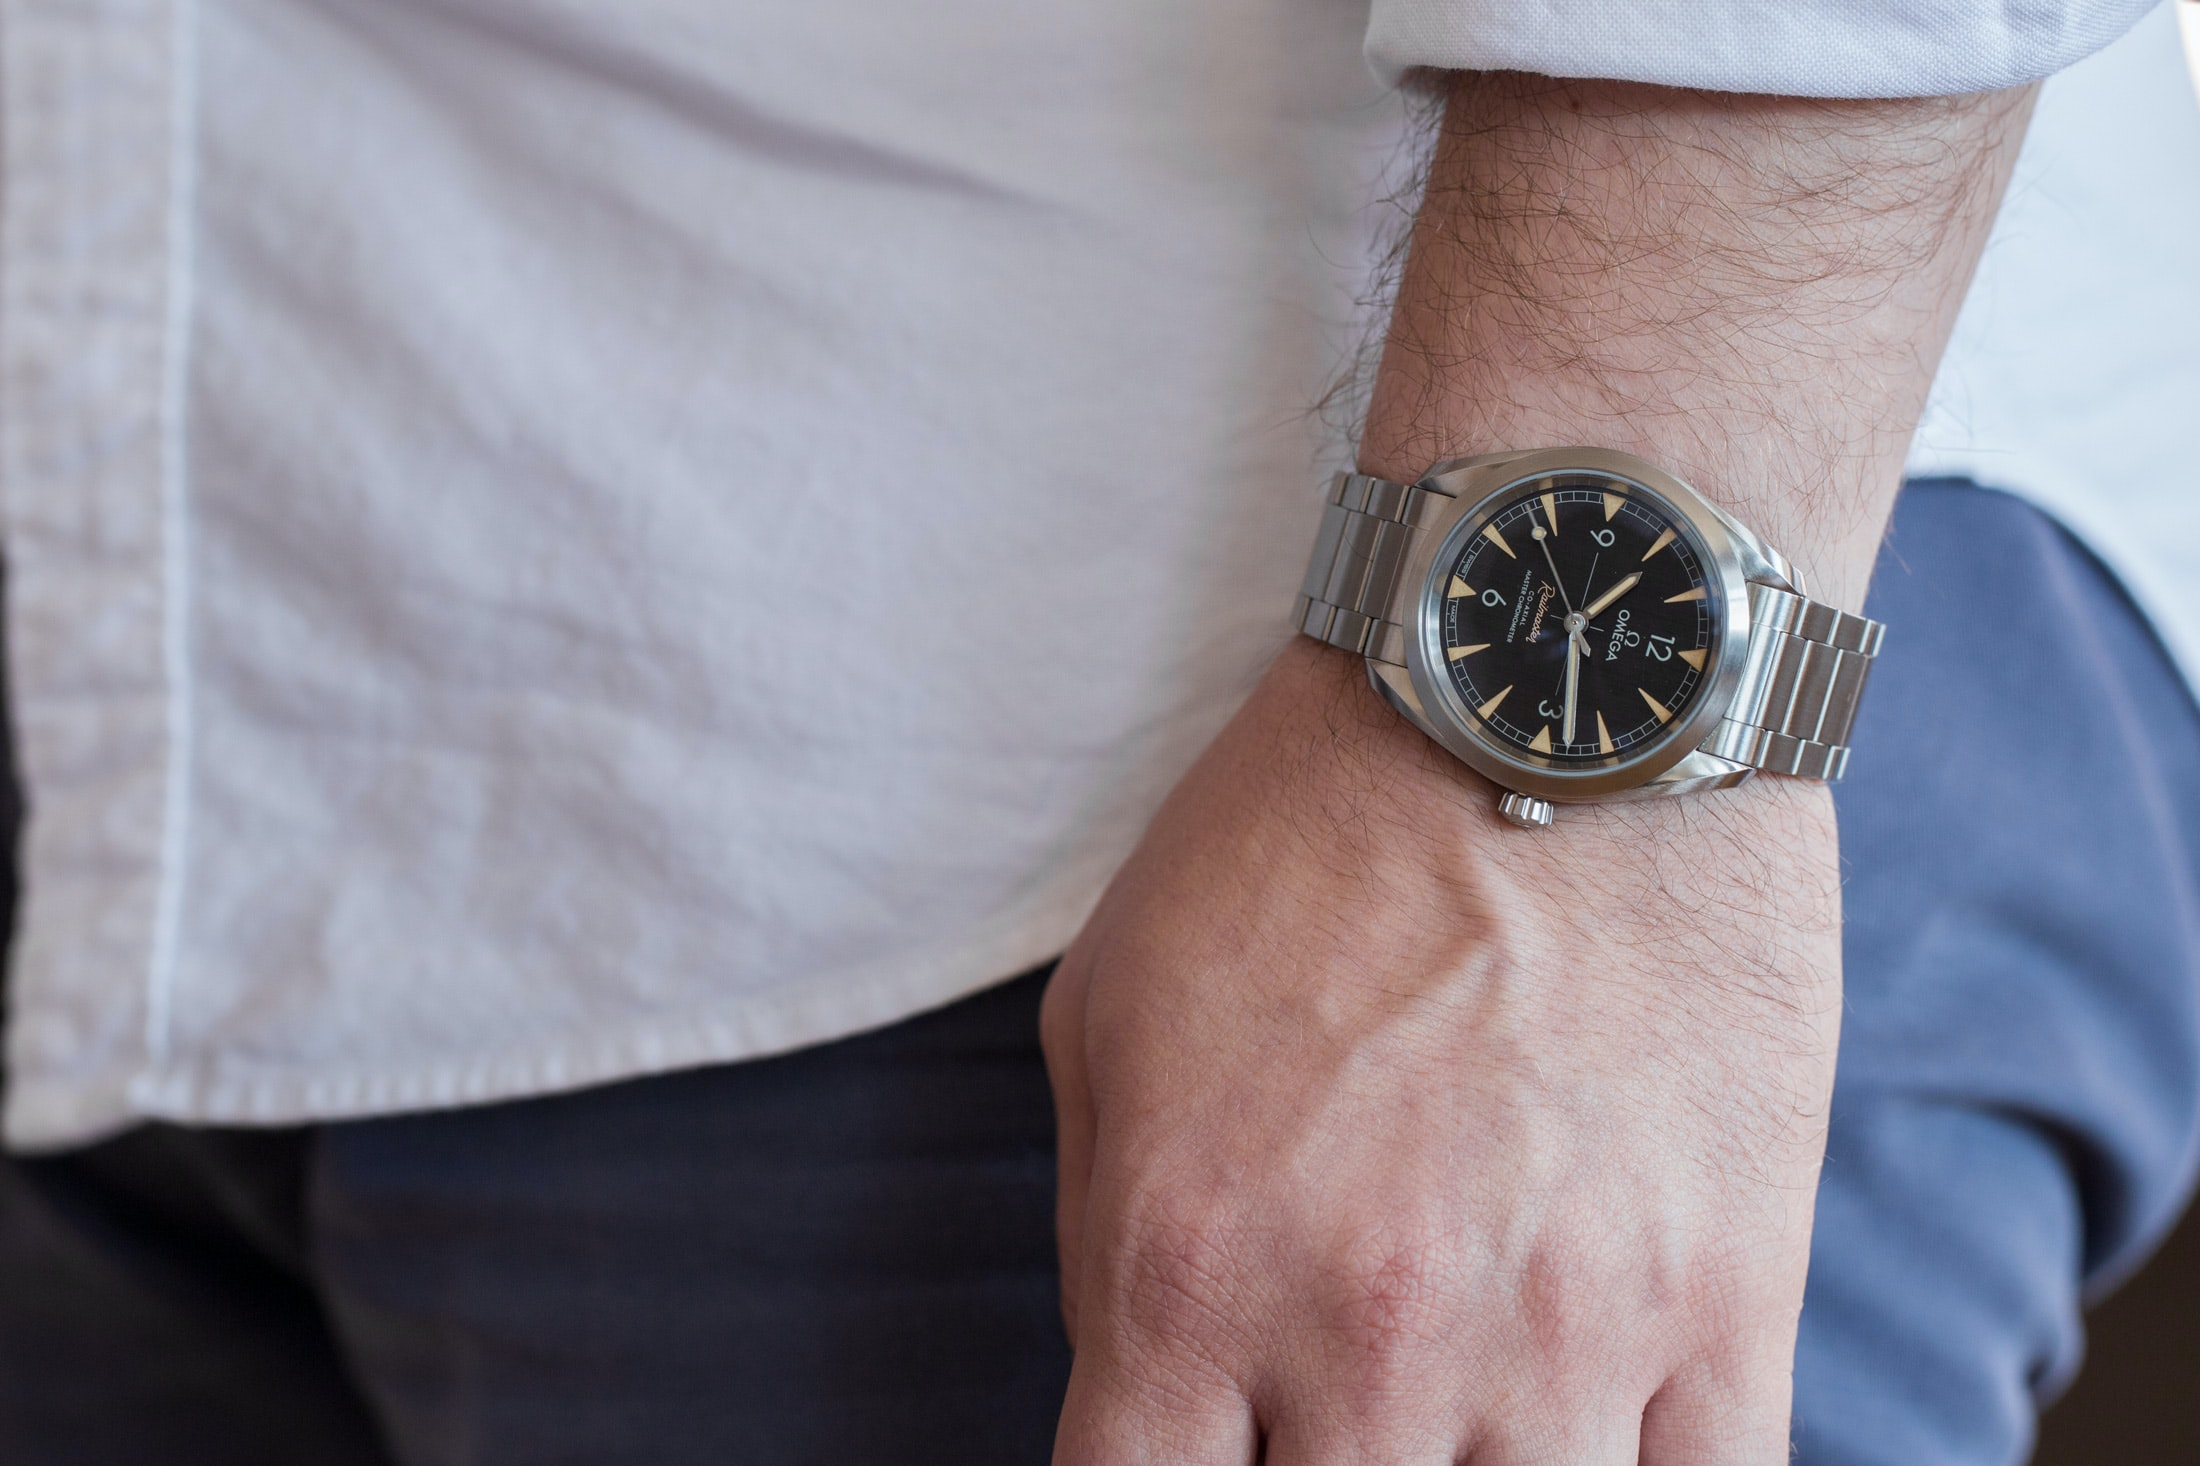 A Week On The Wrist: The Omega Seamaster Railmaster A Week On The Wrist: The Omega Seamaster Railmaster rail 04